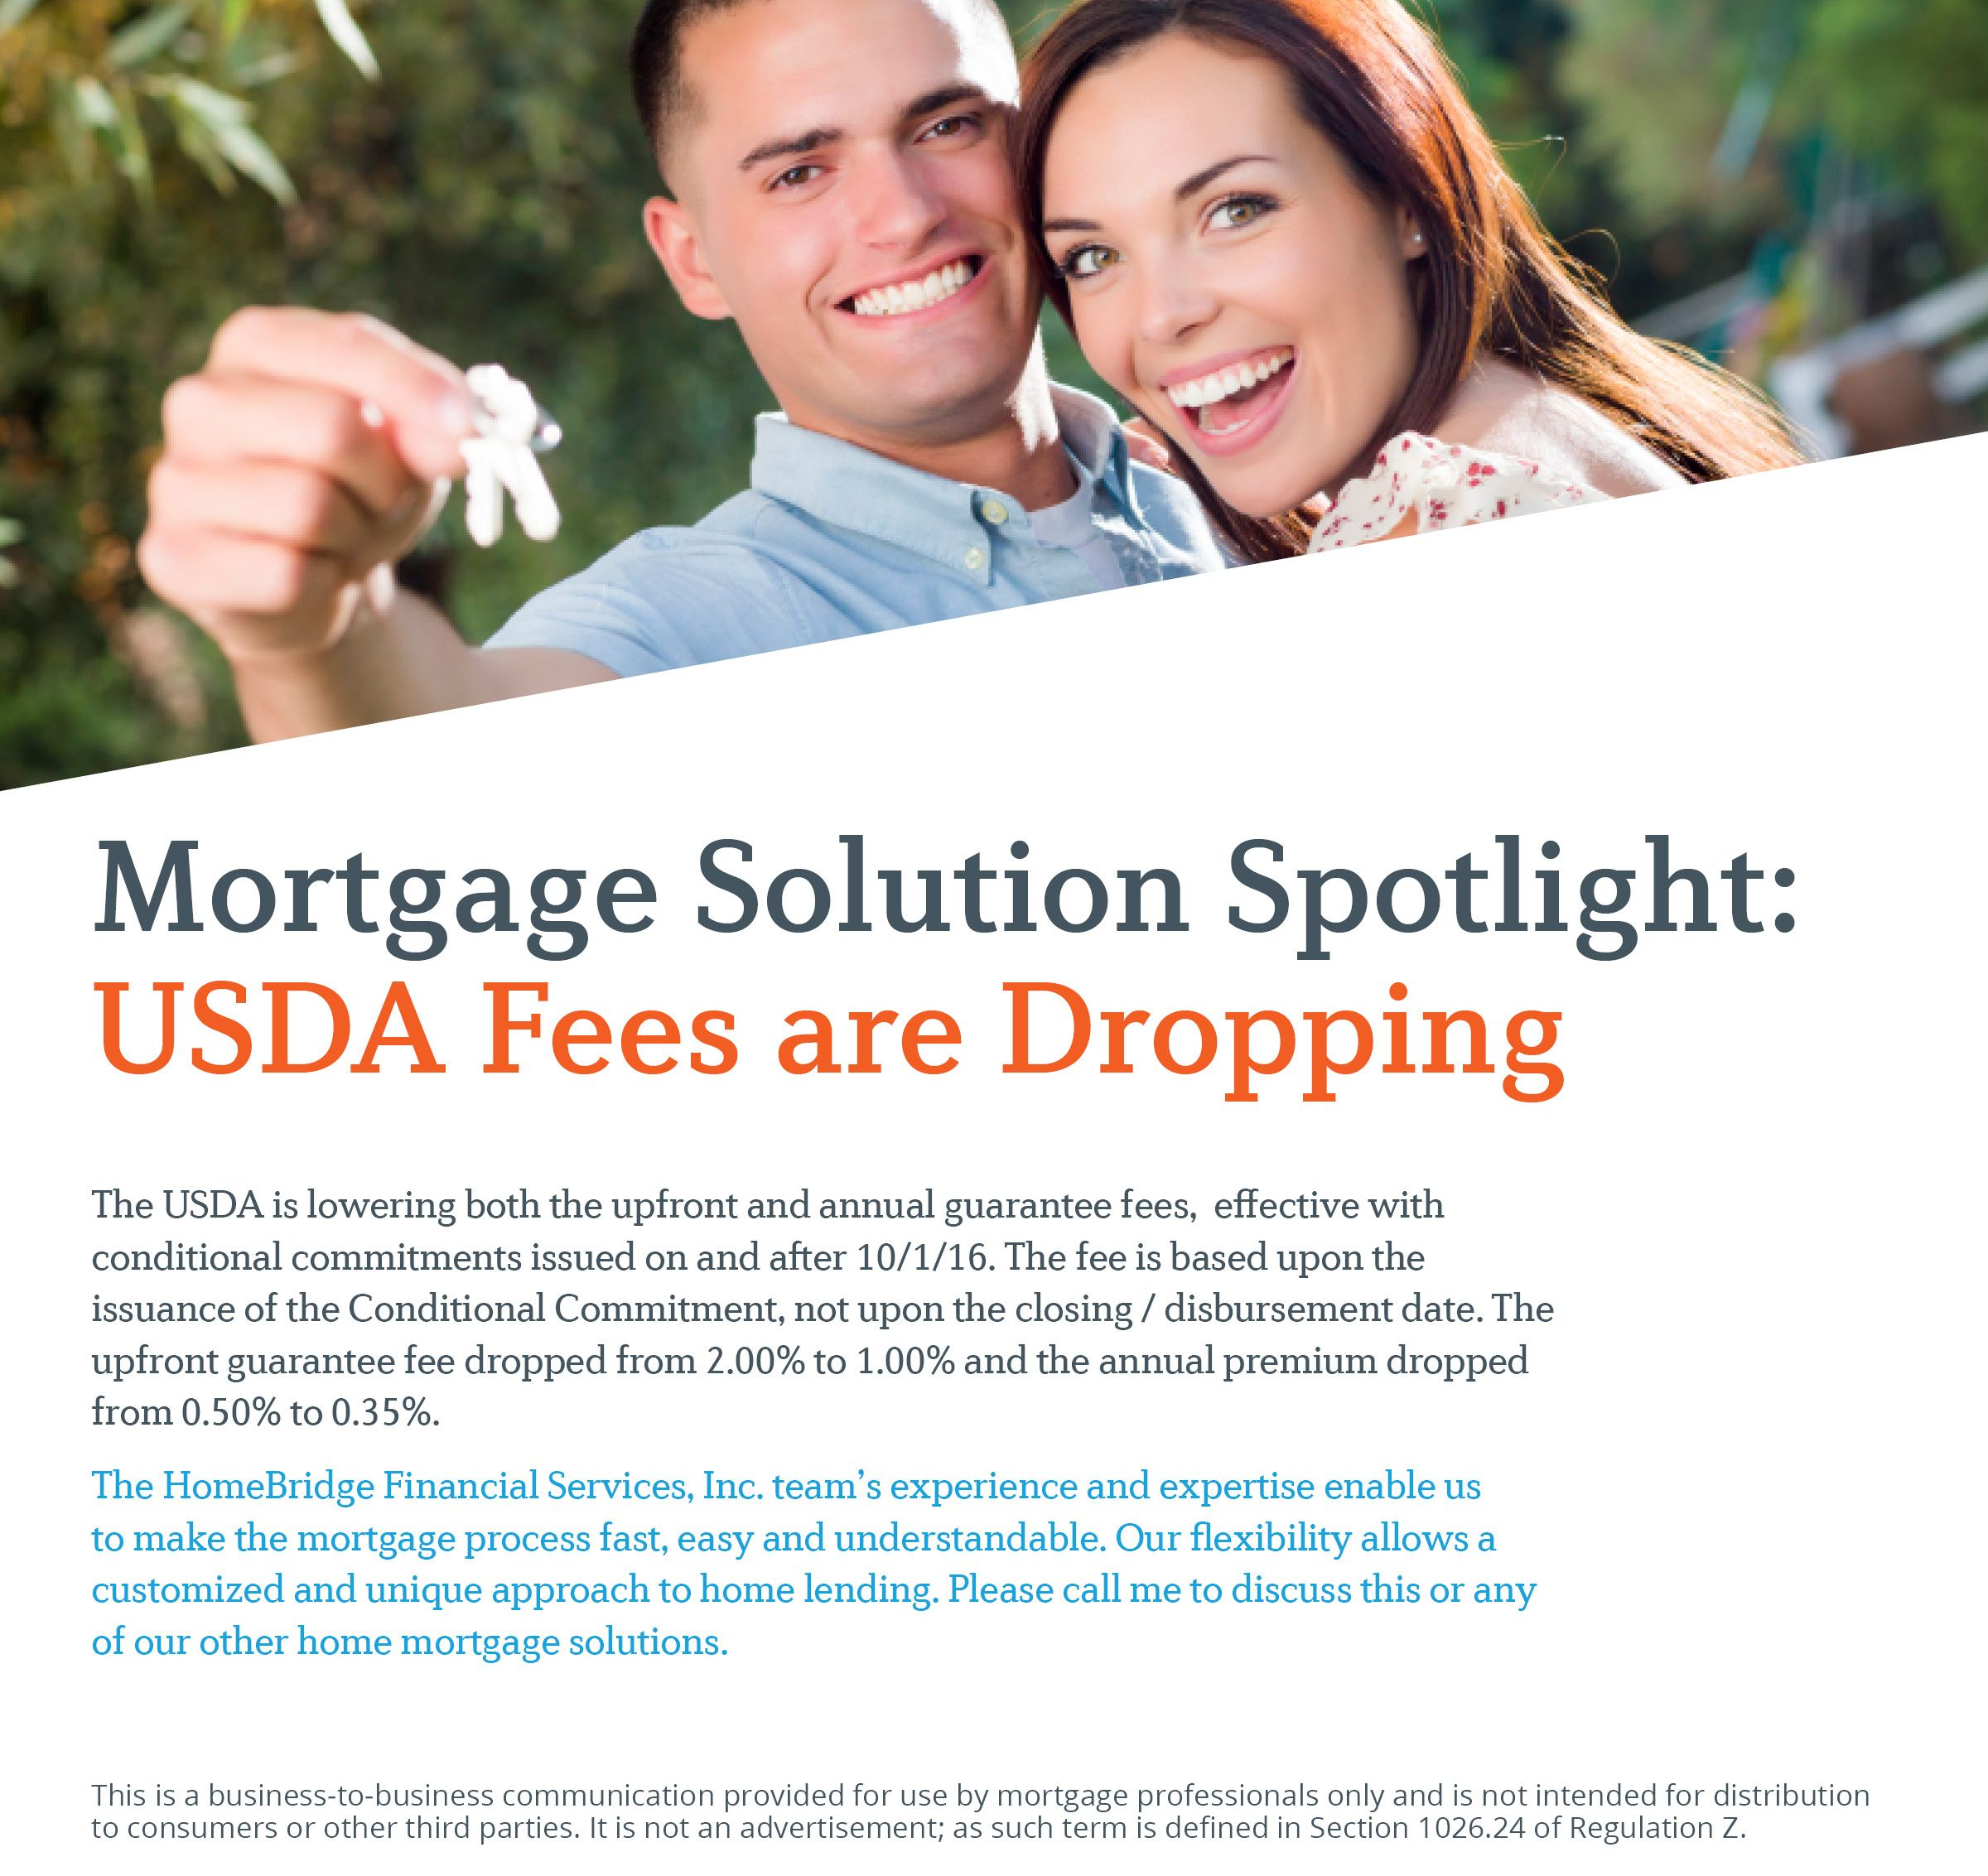 Usda Fees Are Dropping Dean Bendall Mortgage Loan Originator Nmls 222267 Mortgage Mortgage Loan Originator Mortgage Loans